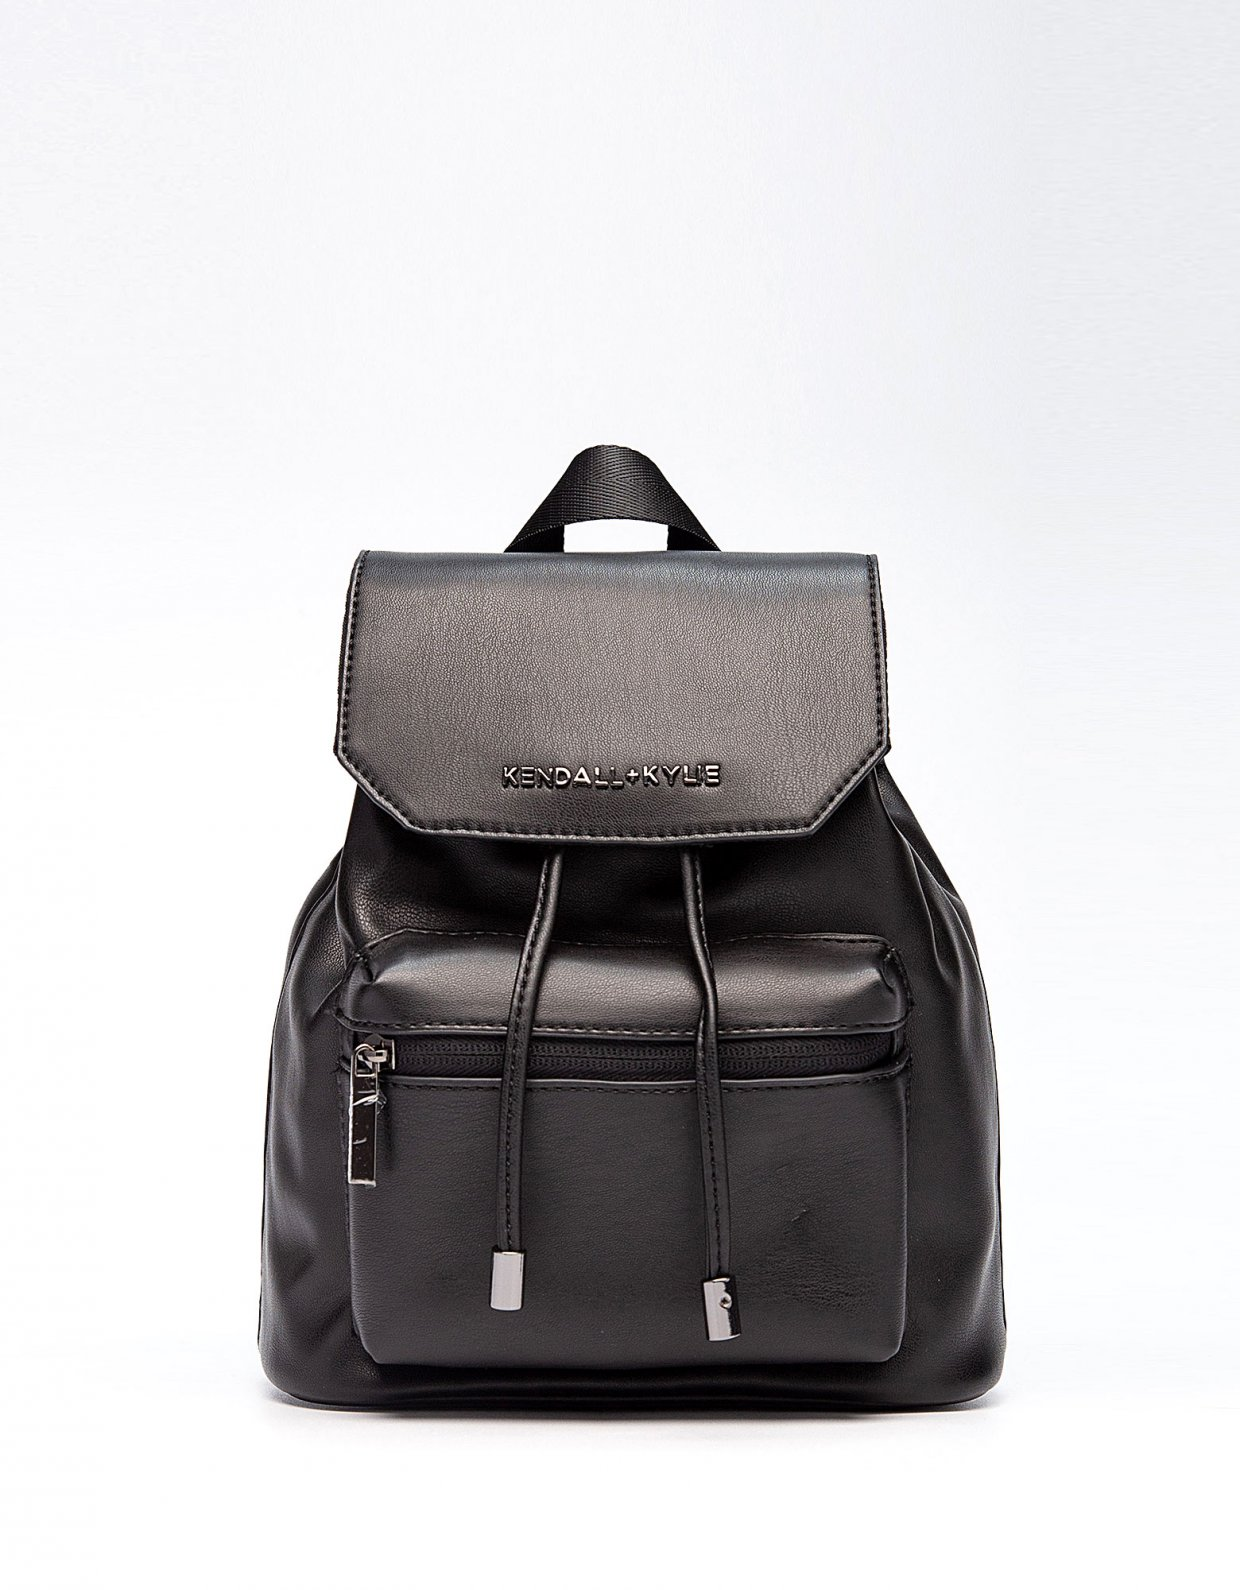 Kendall + Kylie Serena small backpack black